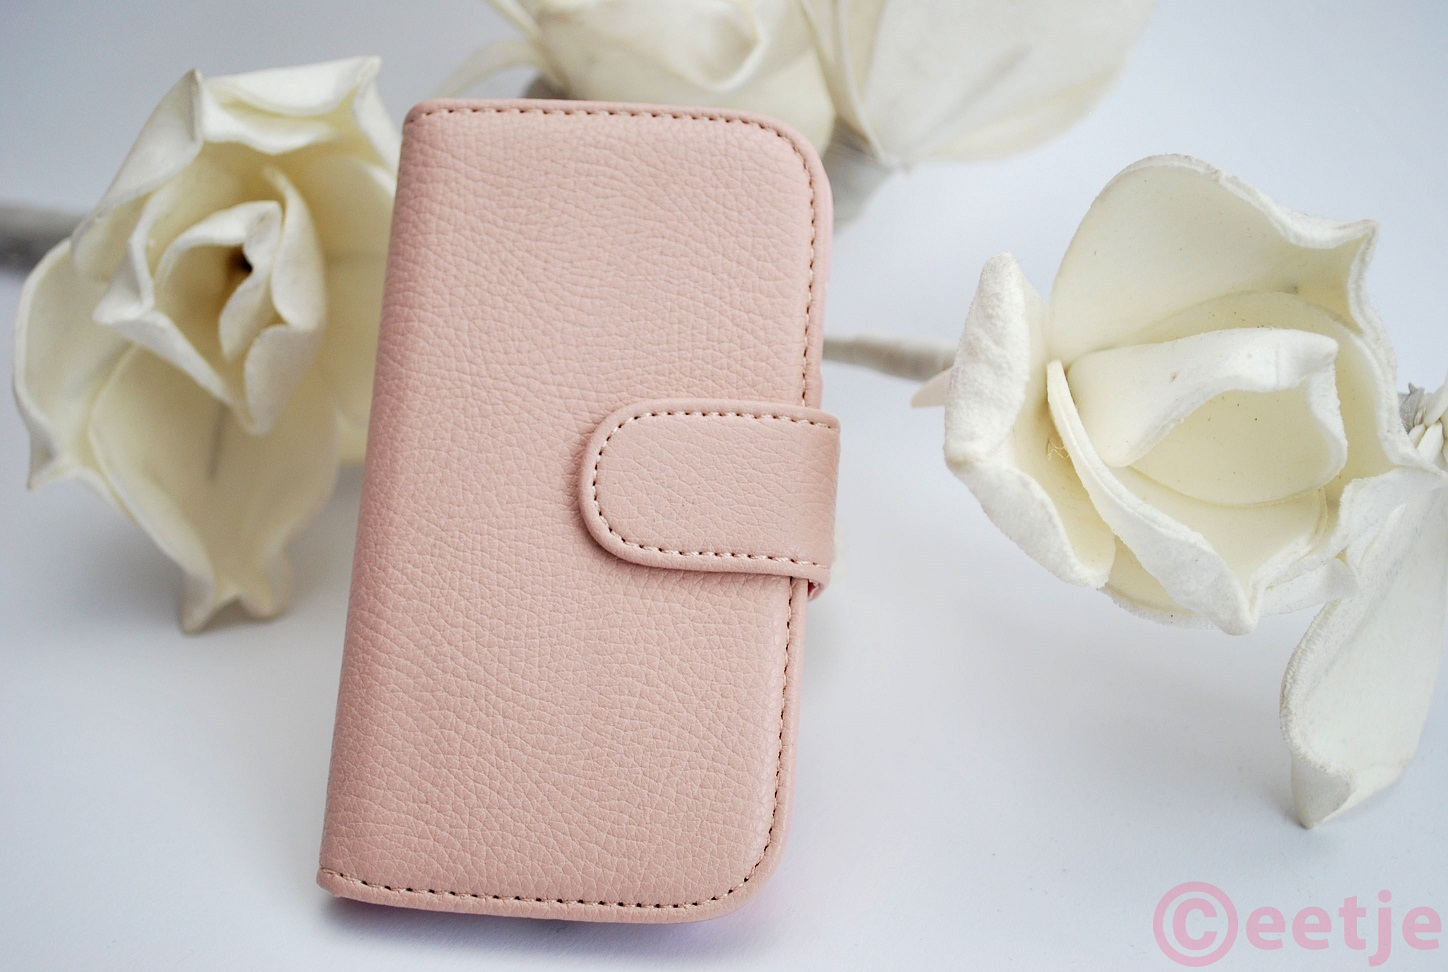 Samsung Galaxy S3 mini hoesje leatherlook